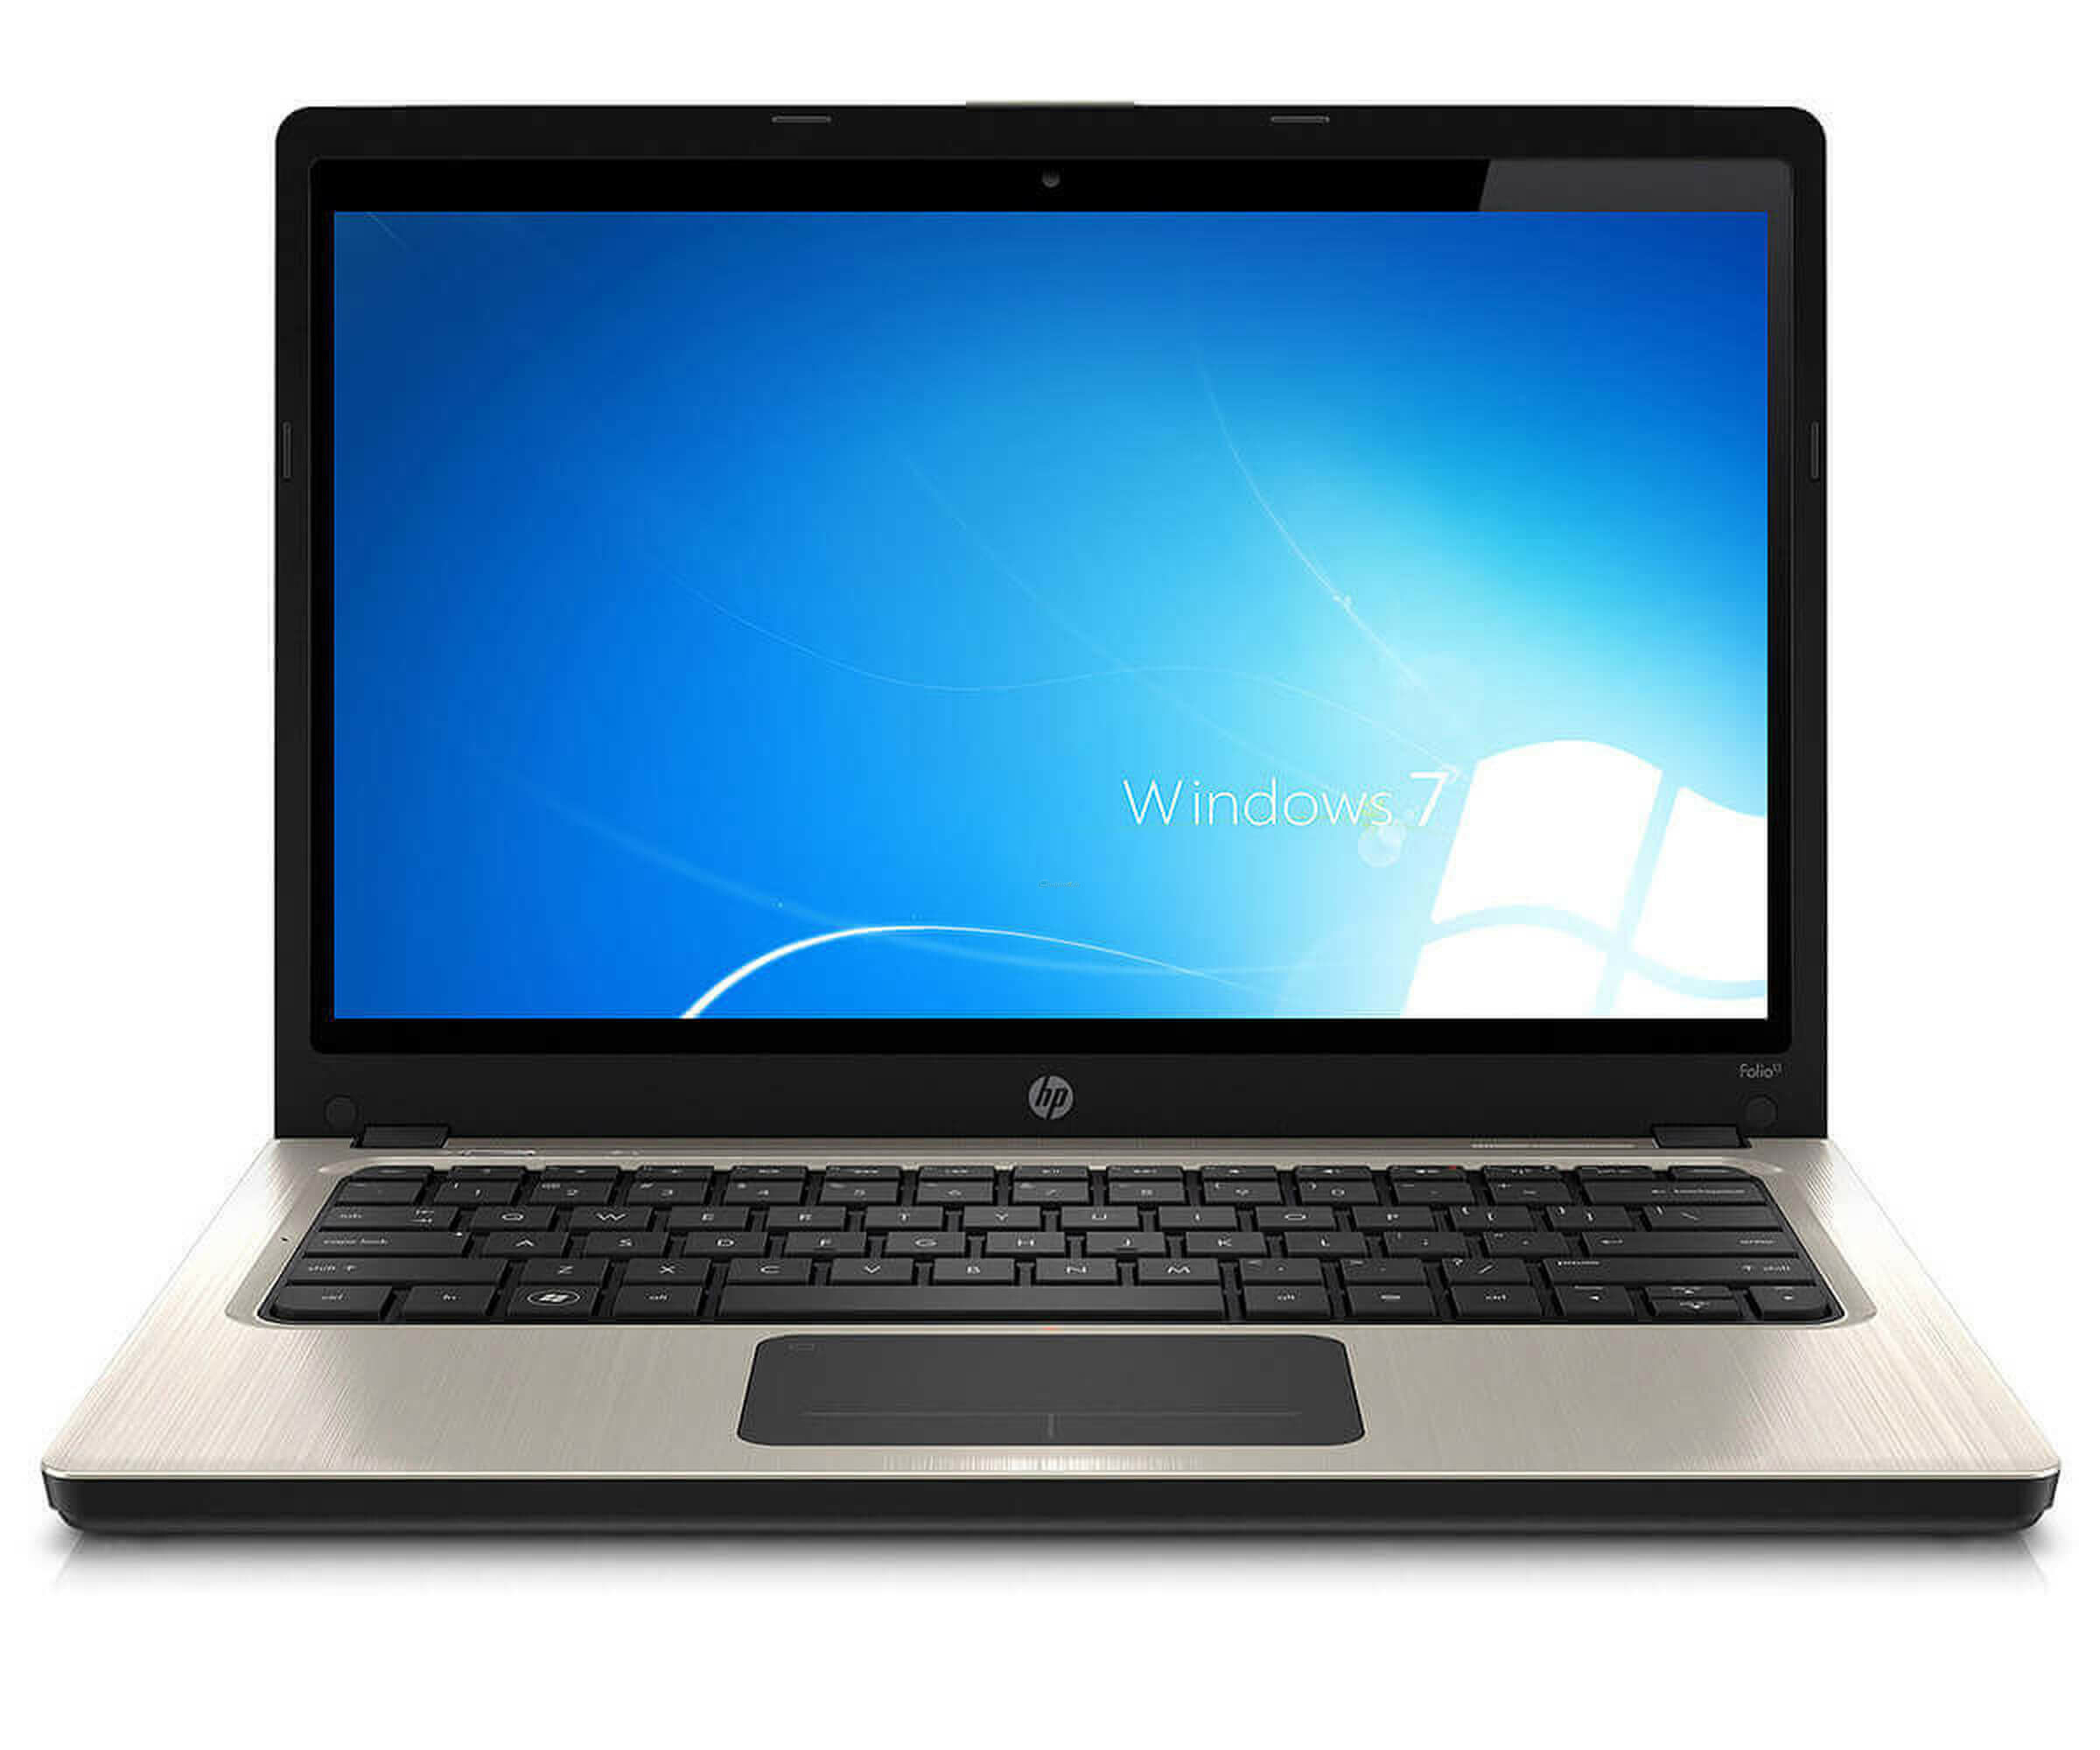 HP Folio 13 - Core i5-2467M / 1.6 GHz - 4 GB RAM - 128 GB SSD - 13.3 TFT - W7